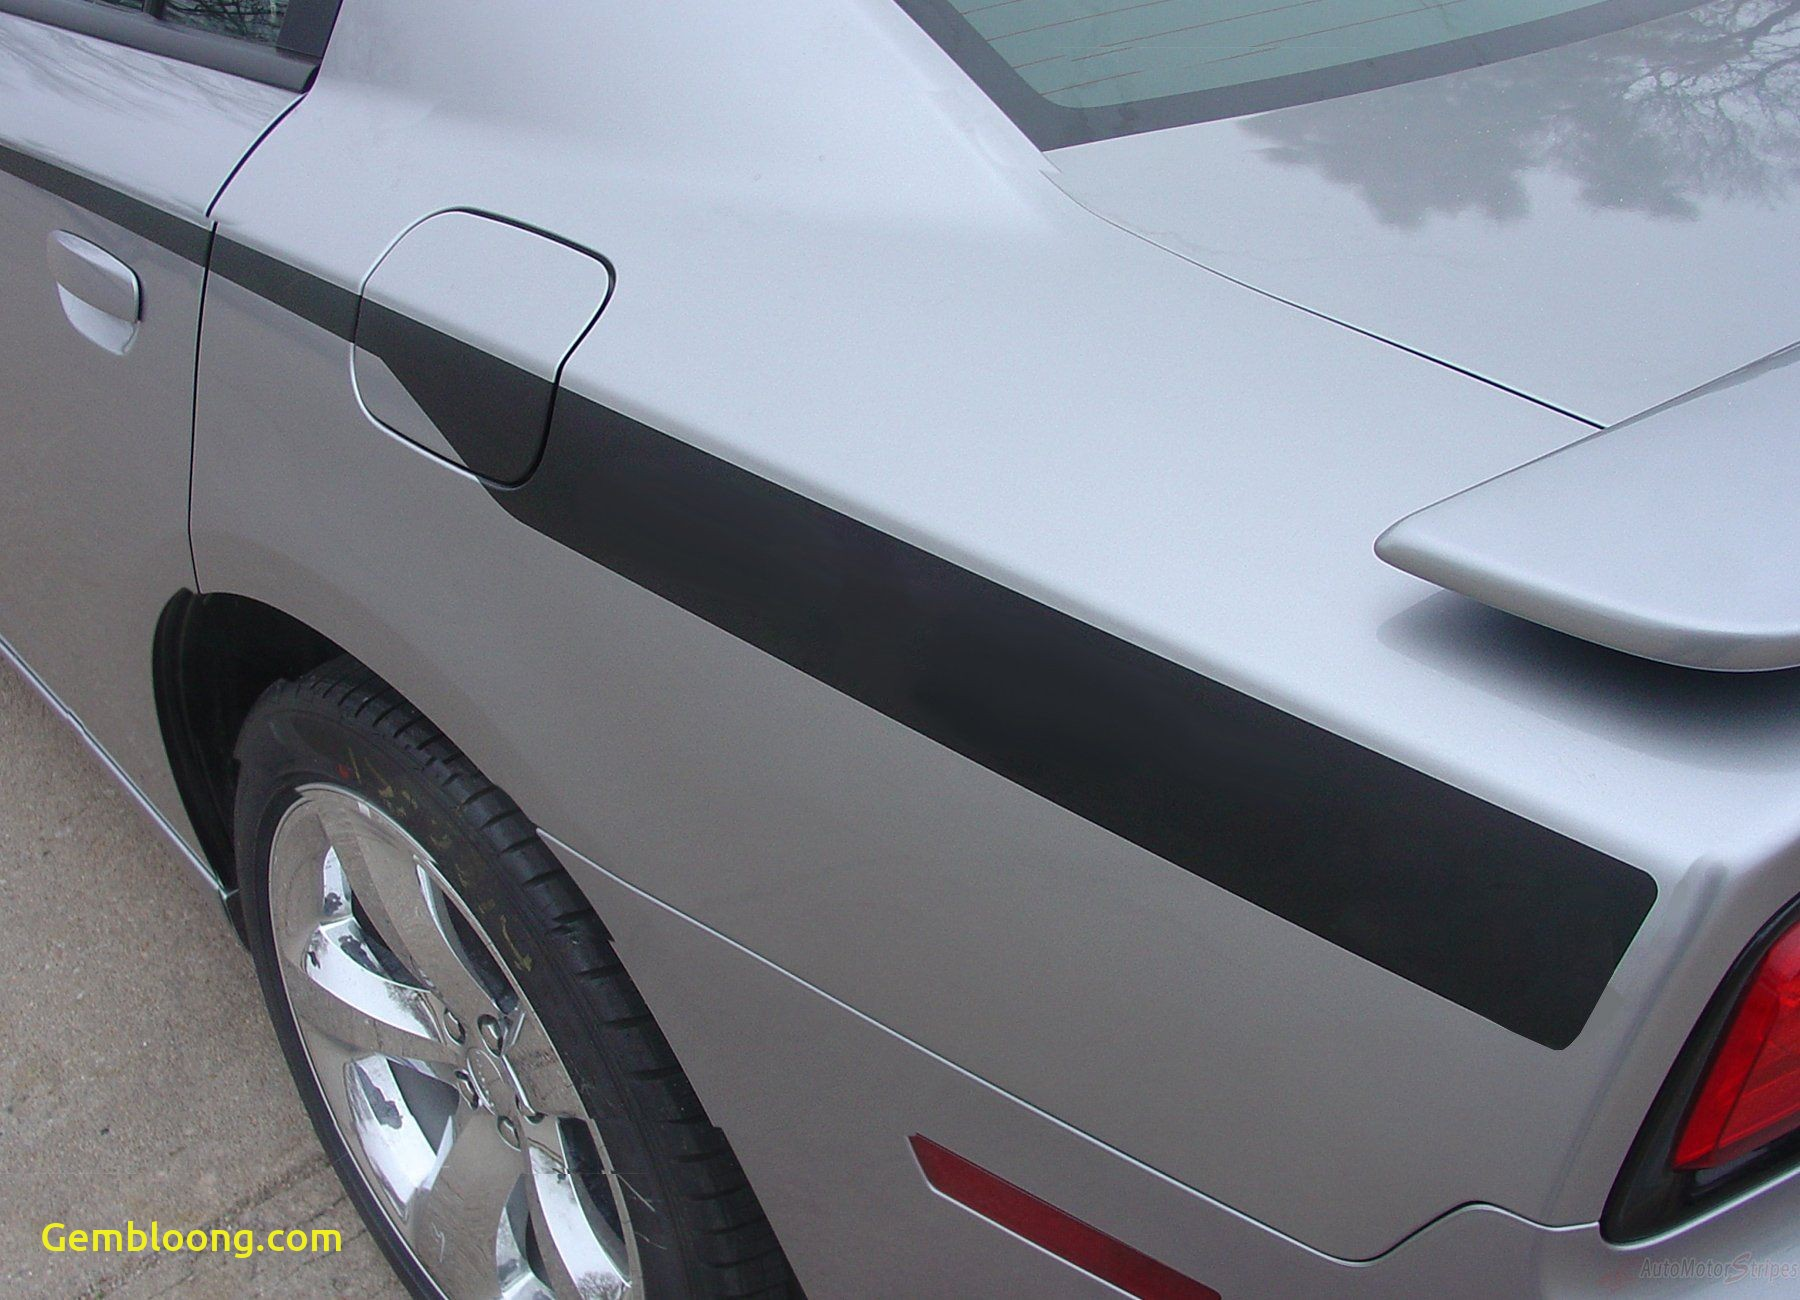 2014 Dodge Charger Awesome 2011 2014 Dodge Charger Recharge Quarter Panels Mopar Style